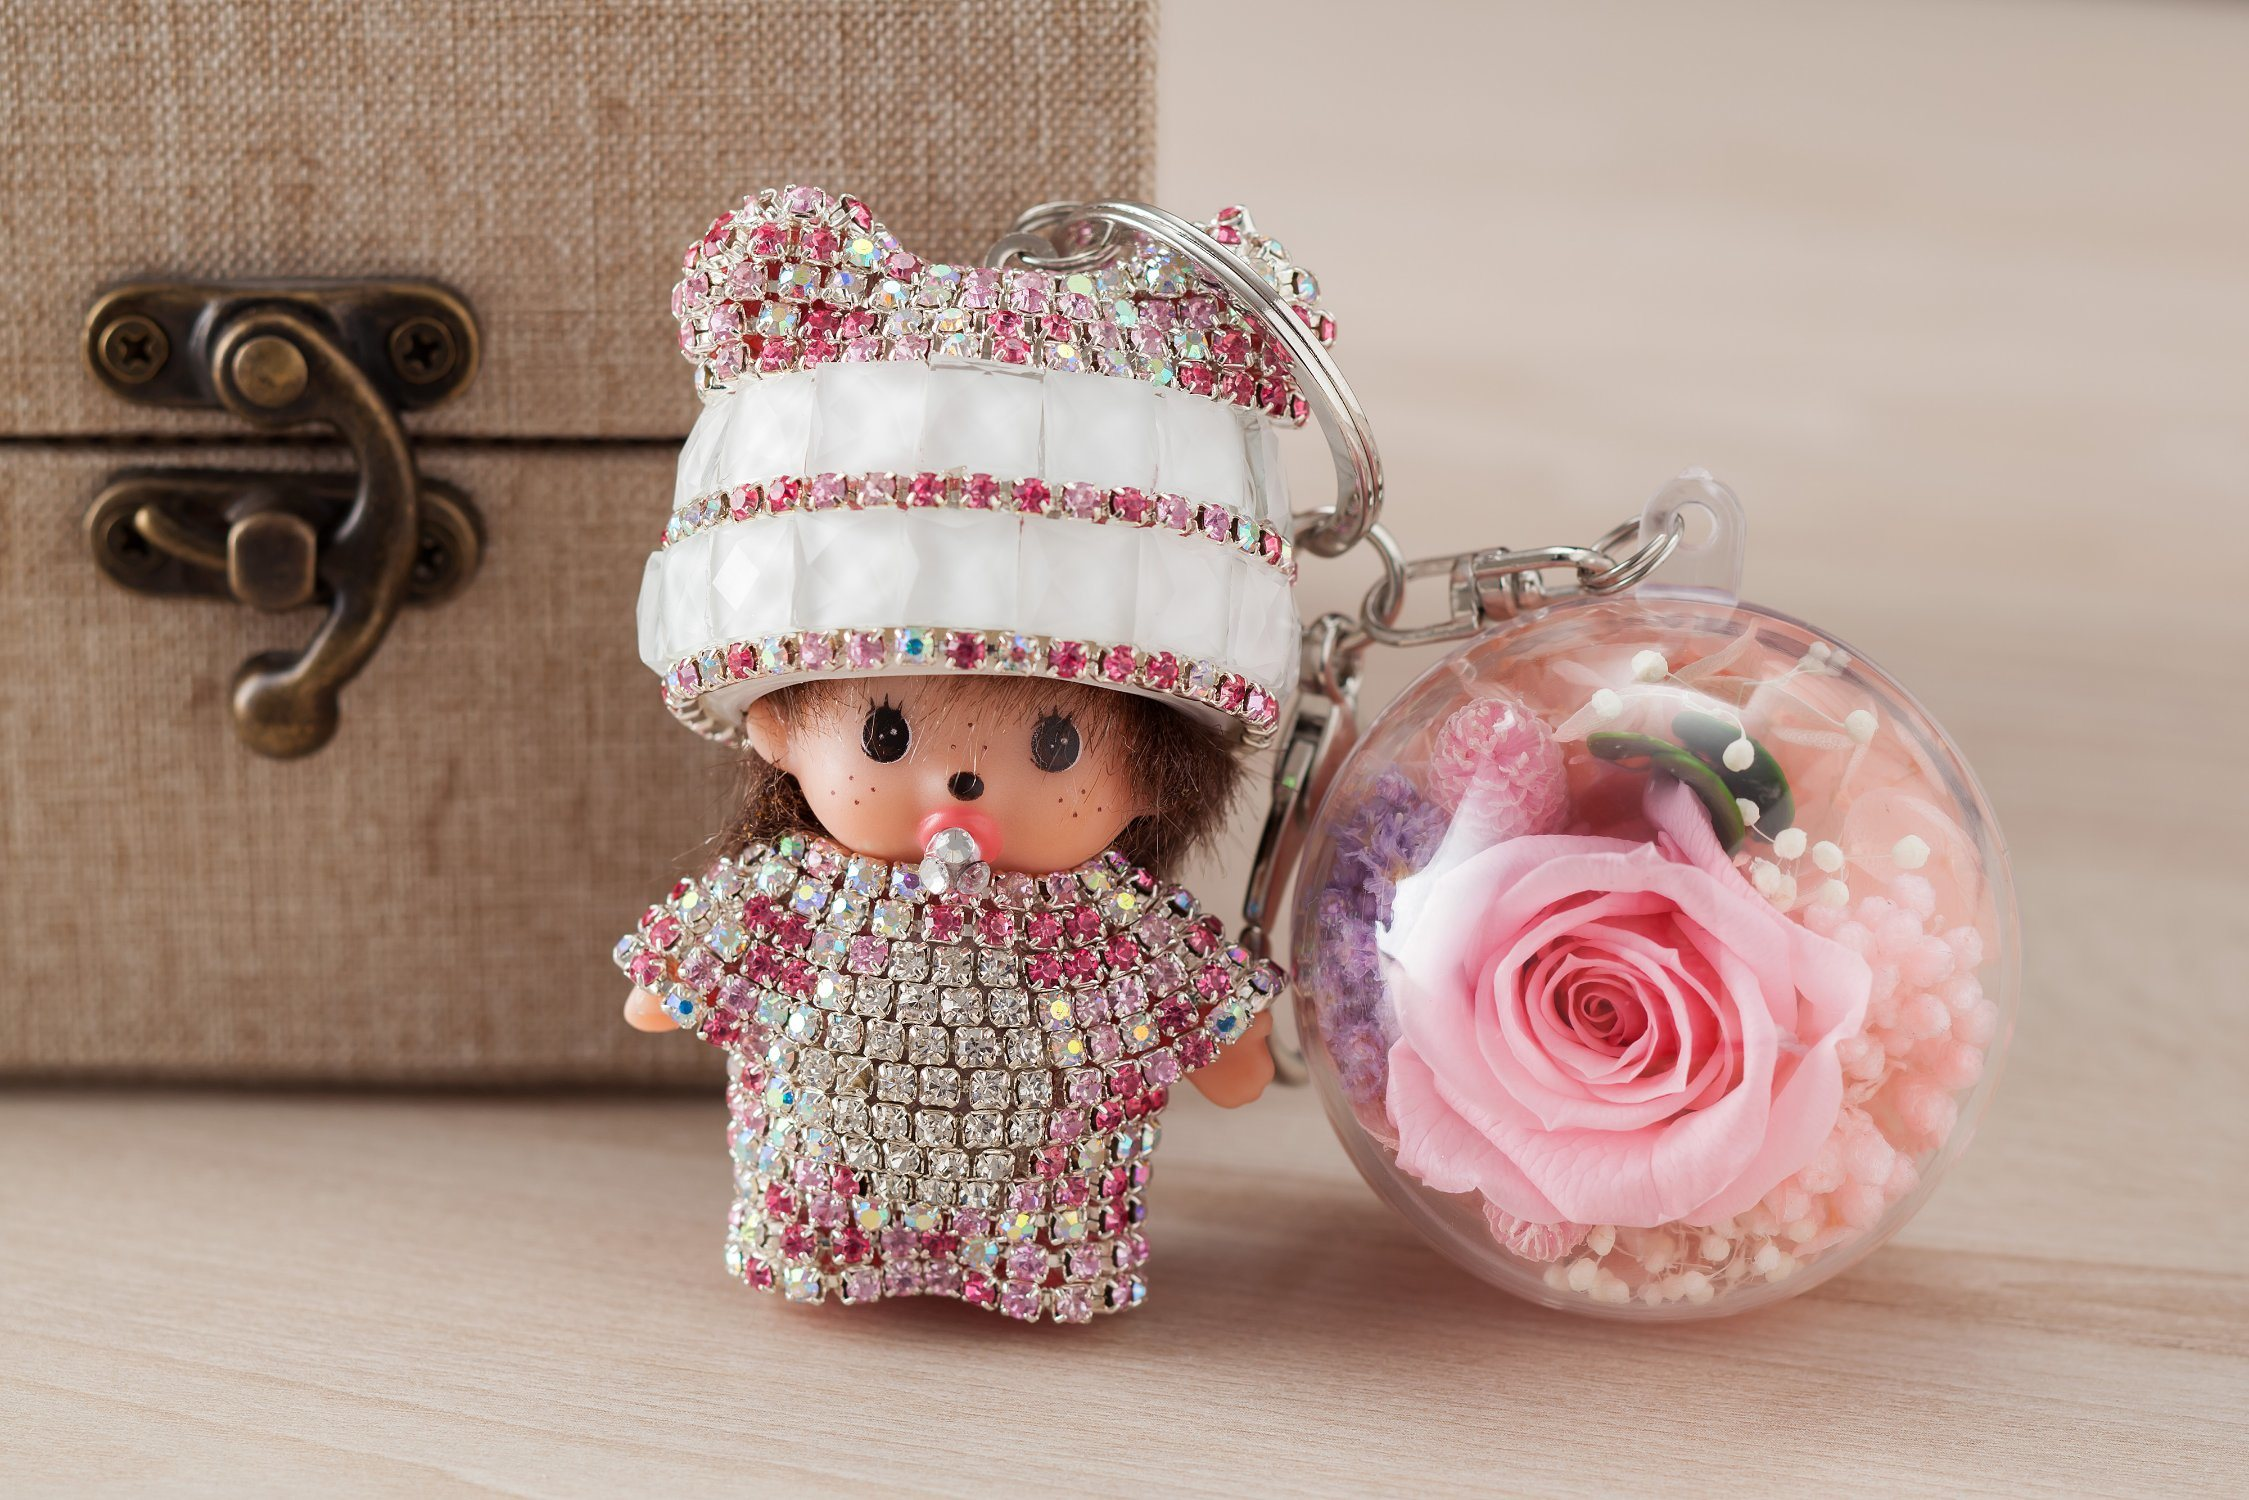 Ivenran Preserved Fresh Flower Monchhichi Keychain for Present and Decoration